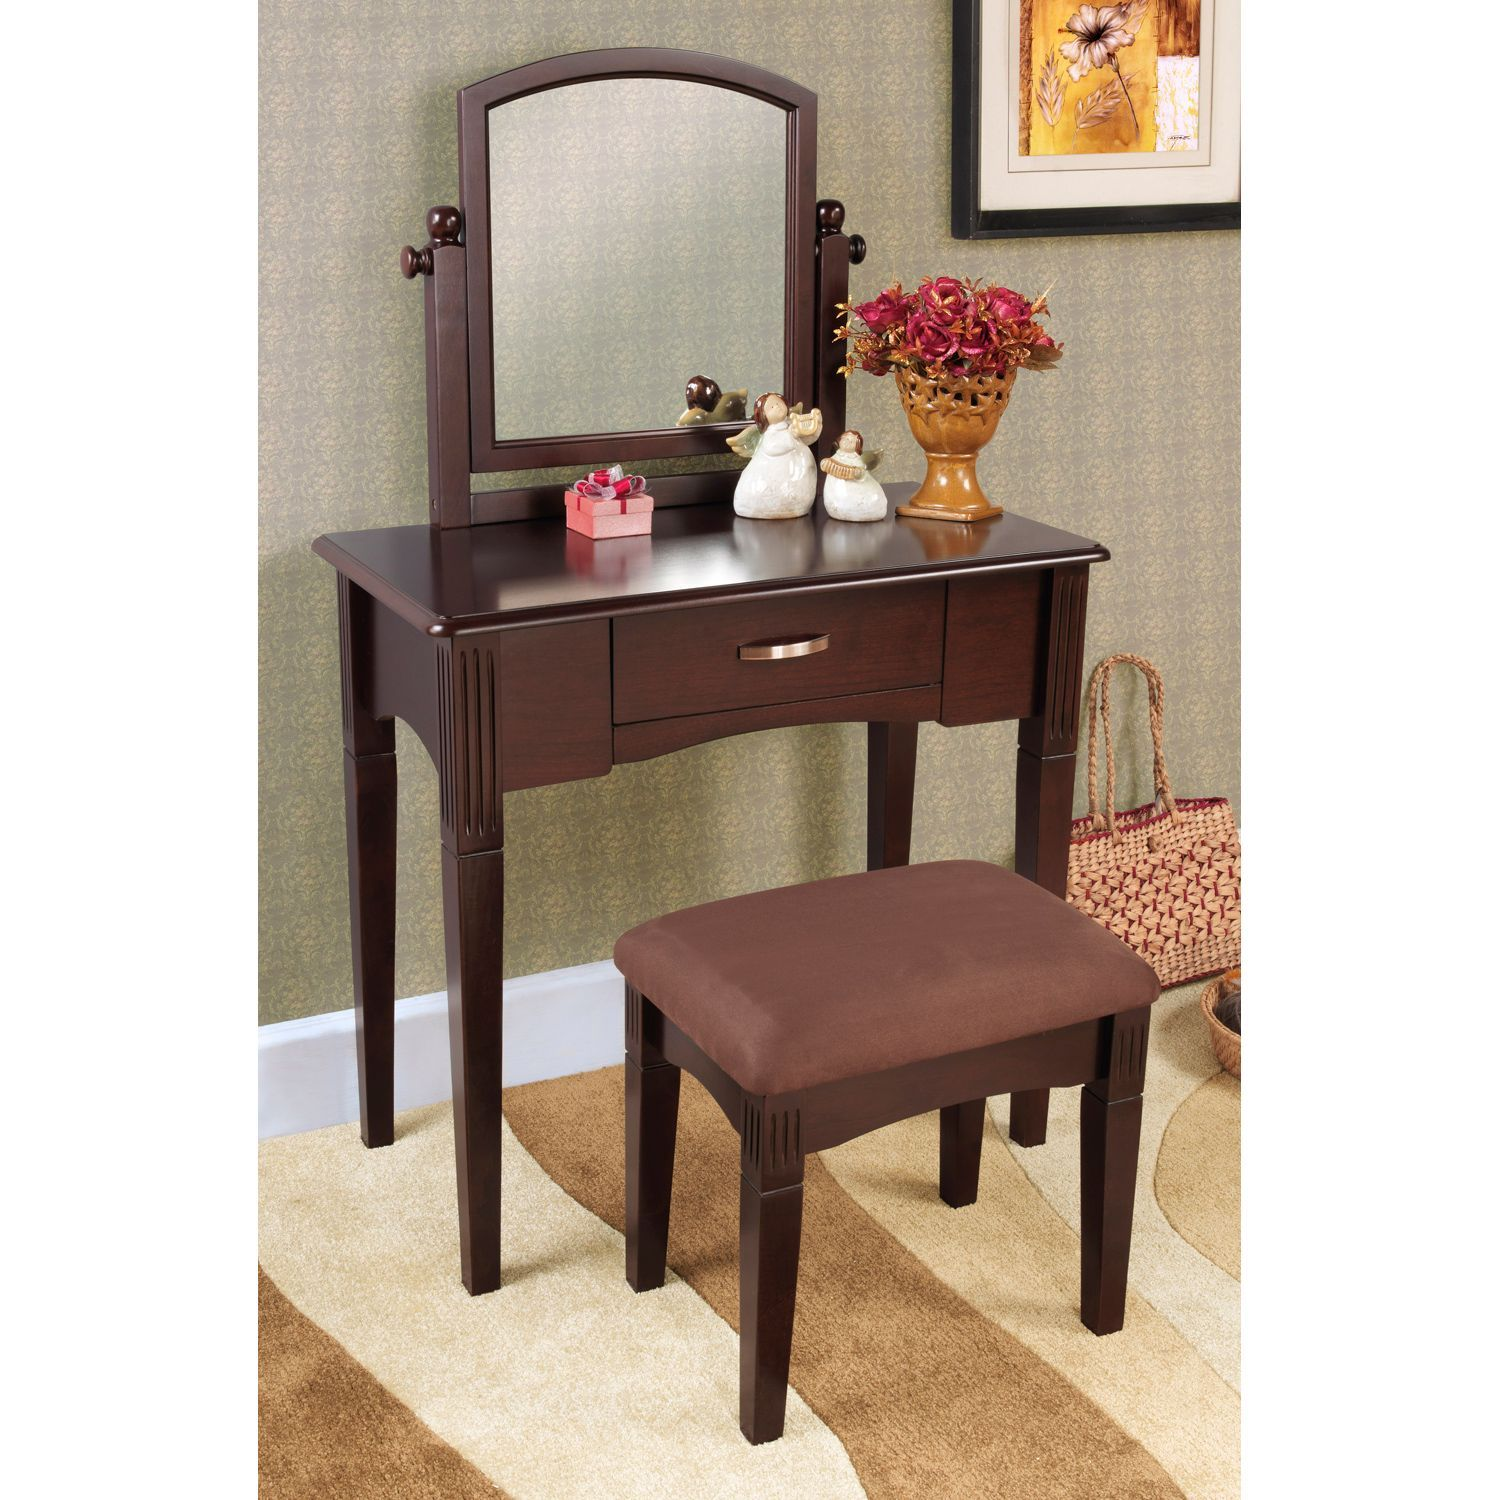 This Three Piece Vanity Set With An Espresso Finish Is A Great